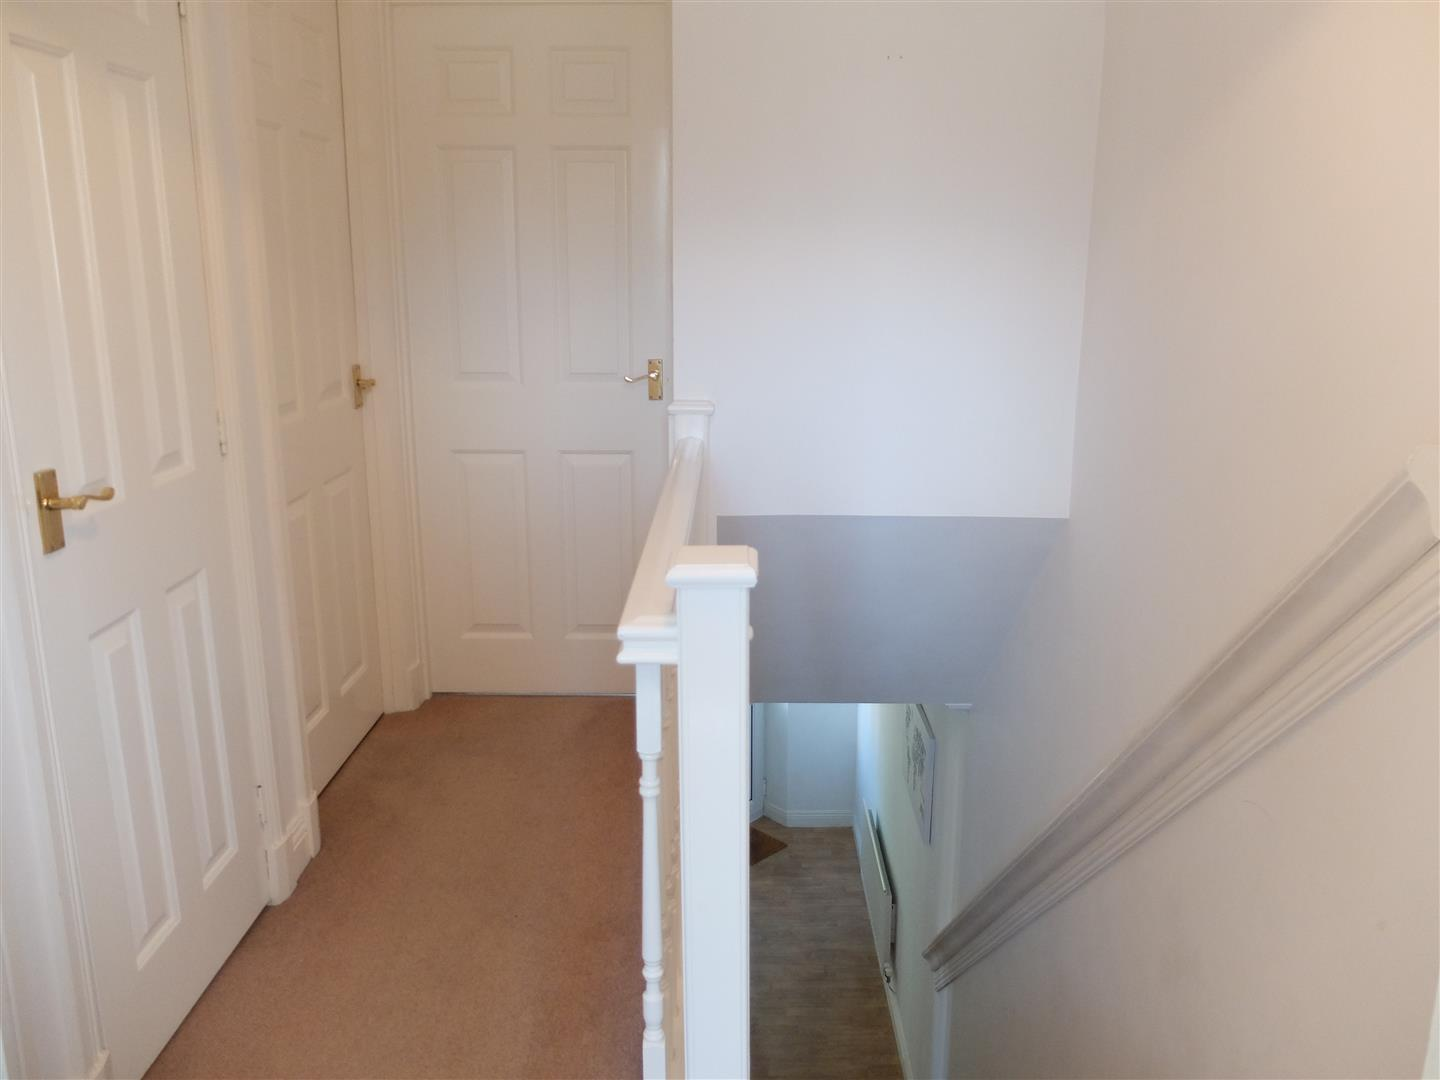 3 Bedrooms House - Semi-Detached For Sale 91 Larch Drive Carlisle 169,950